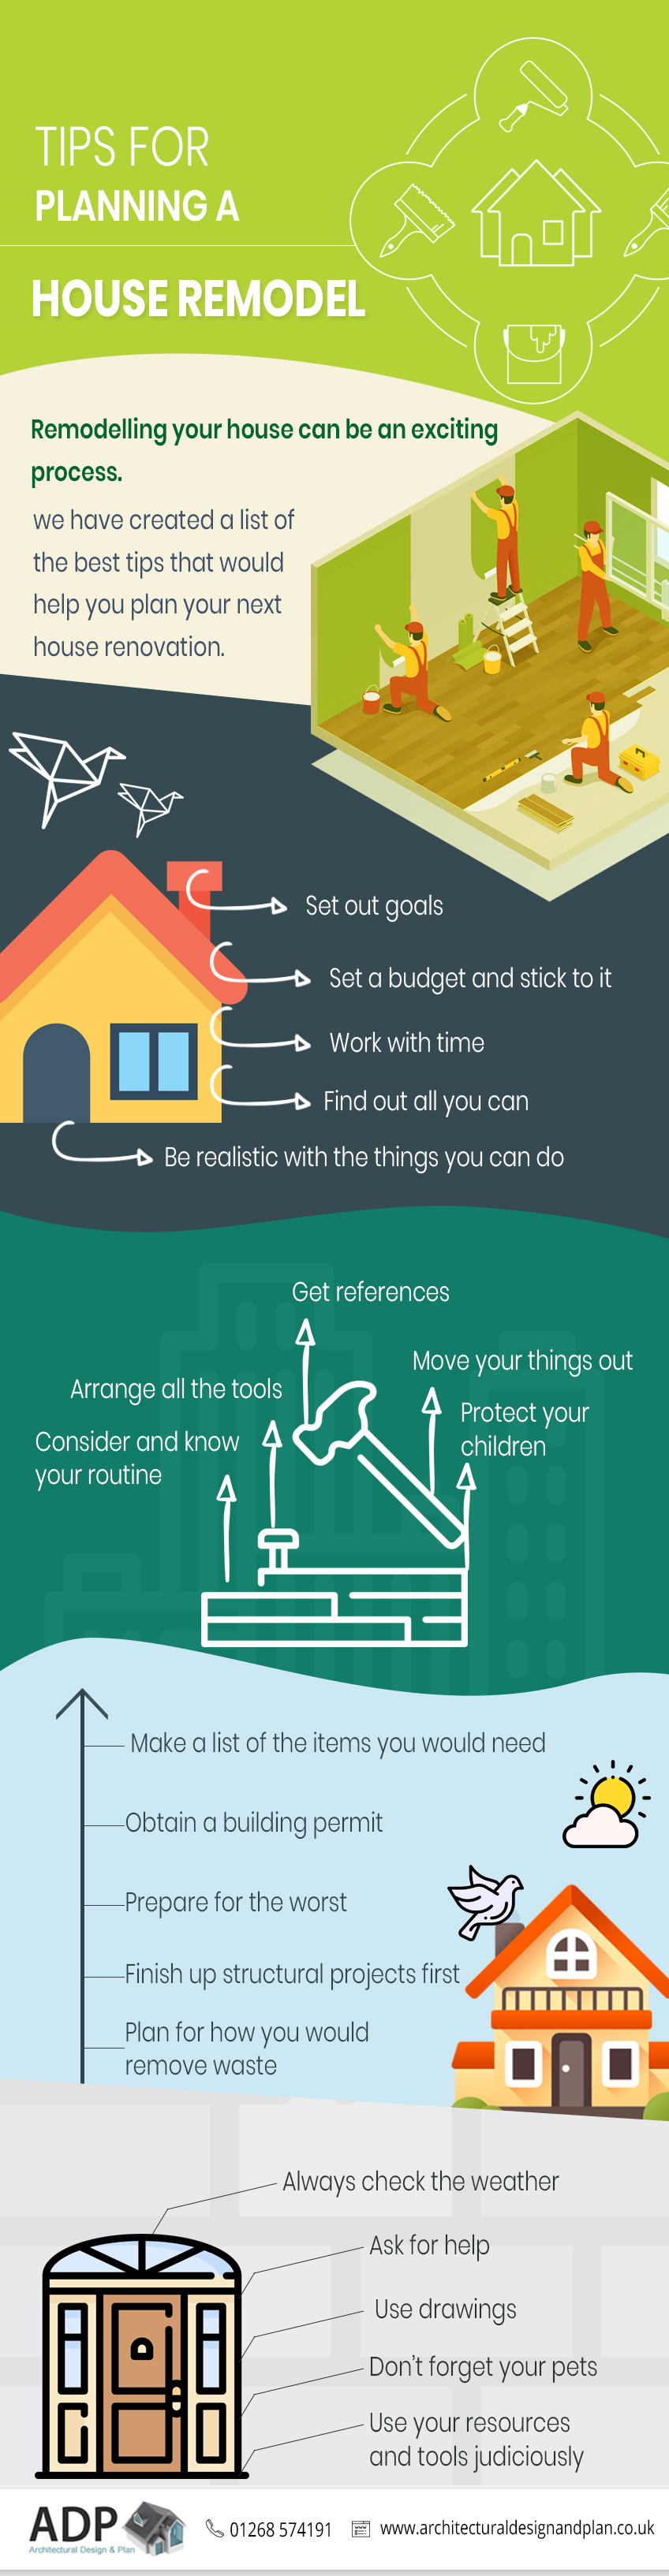 house remodel infographic